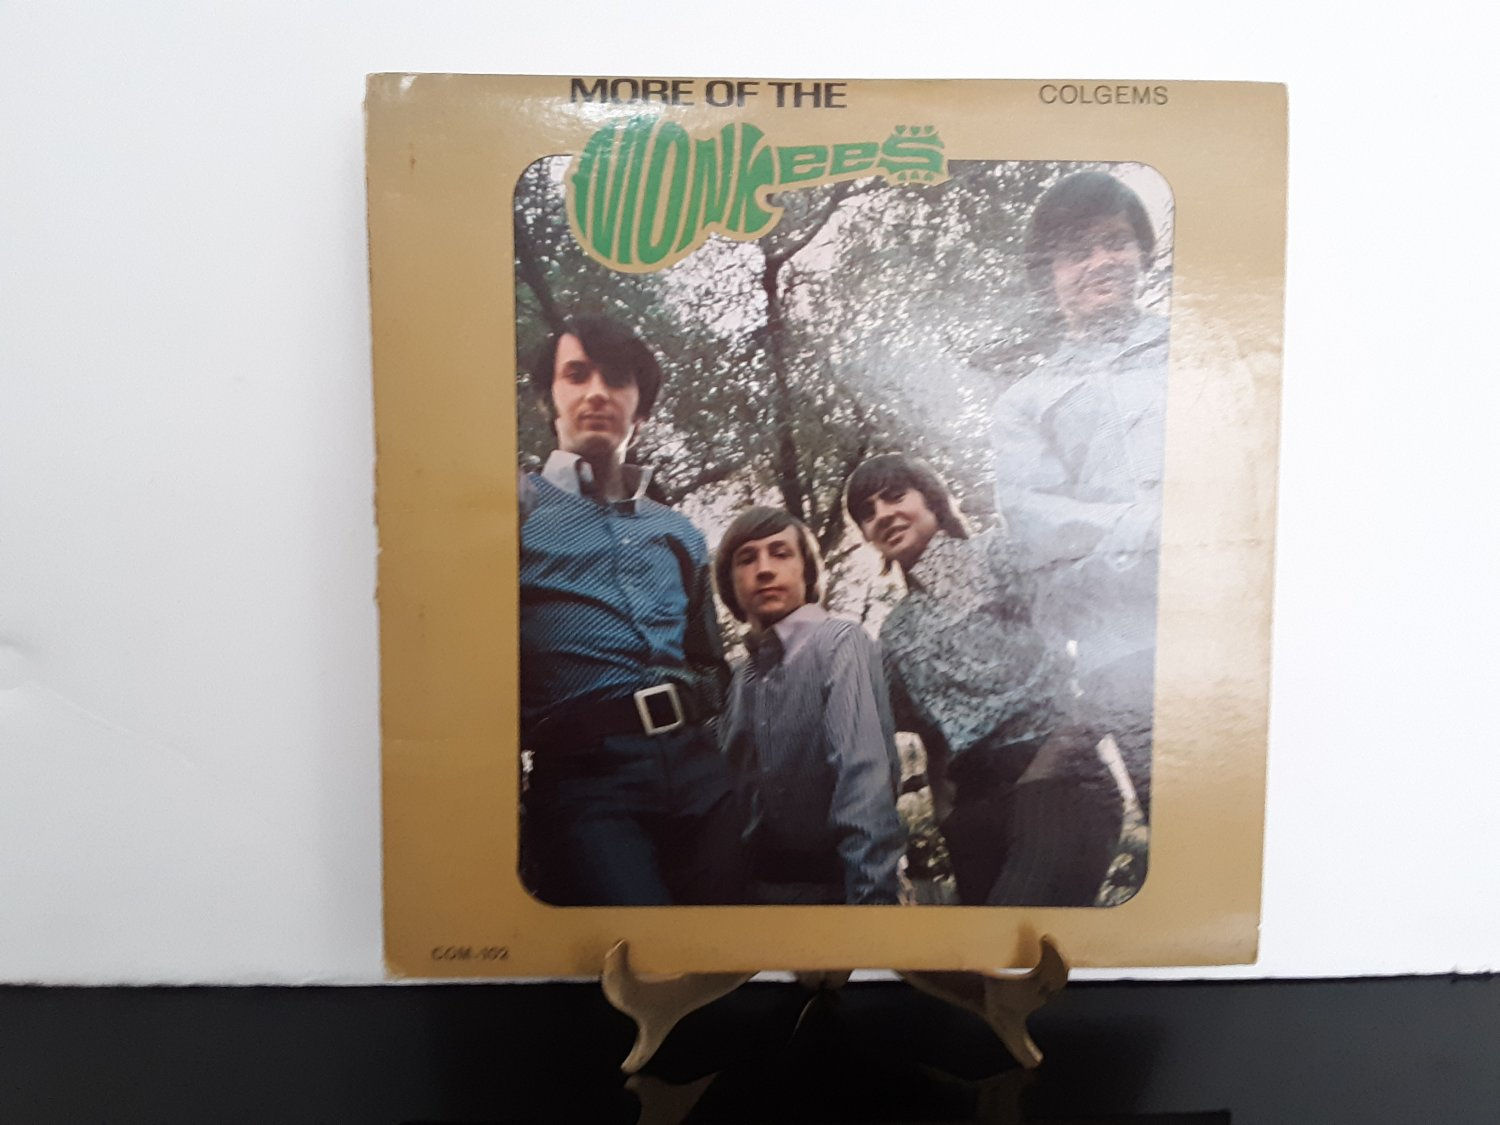 """The Monkees - """"I'm A Believer"""" - More of The Monkees - Circa 1967"""